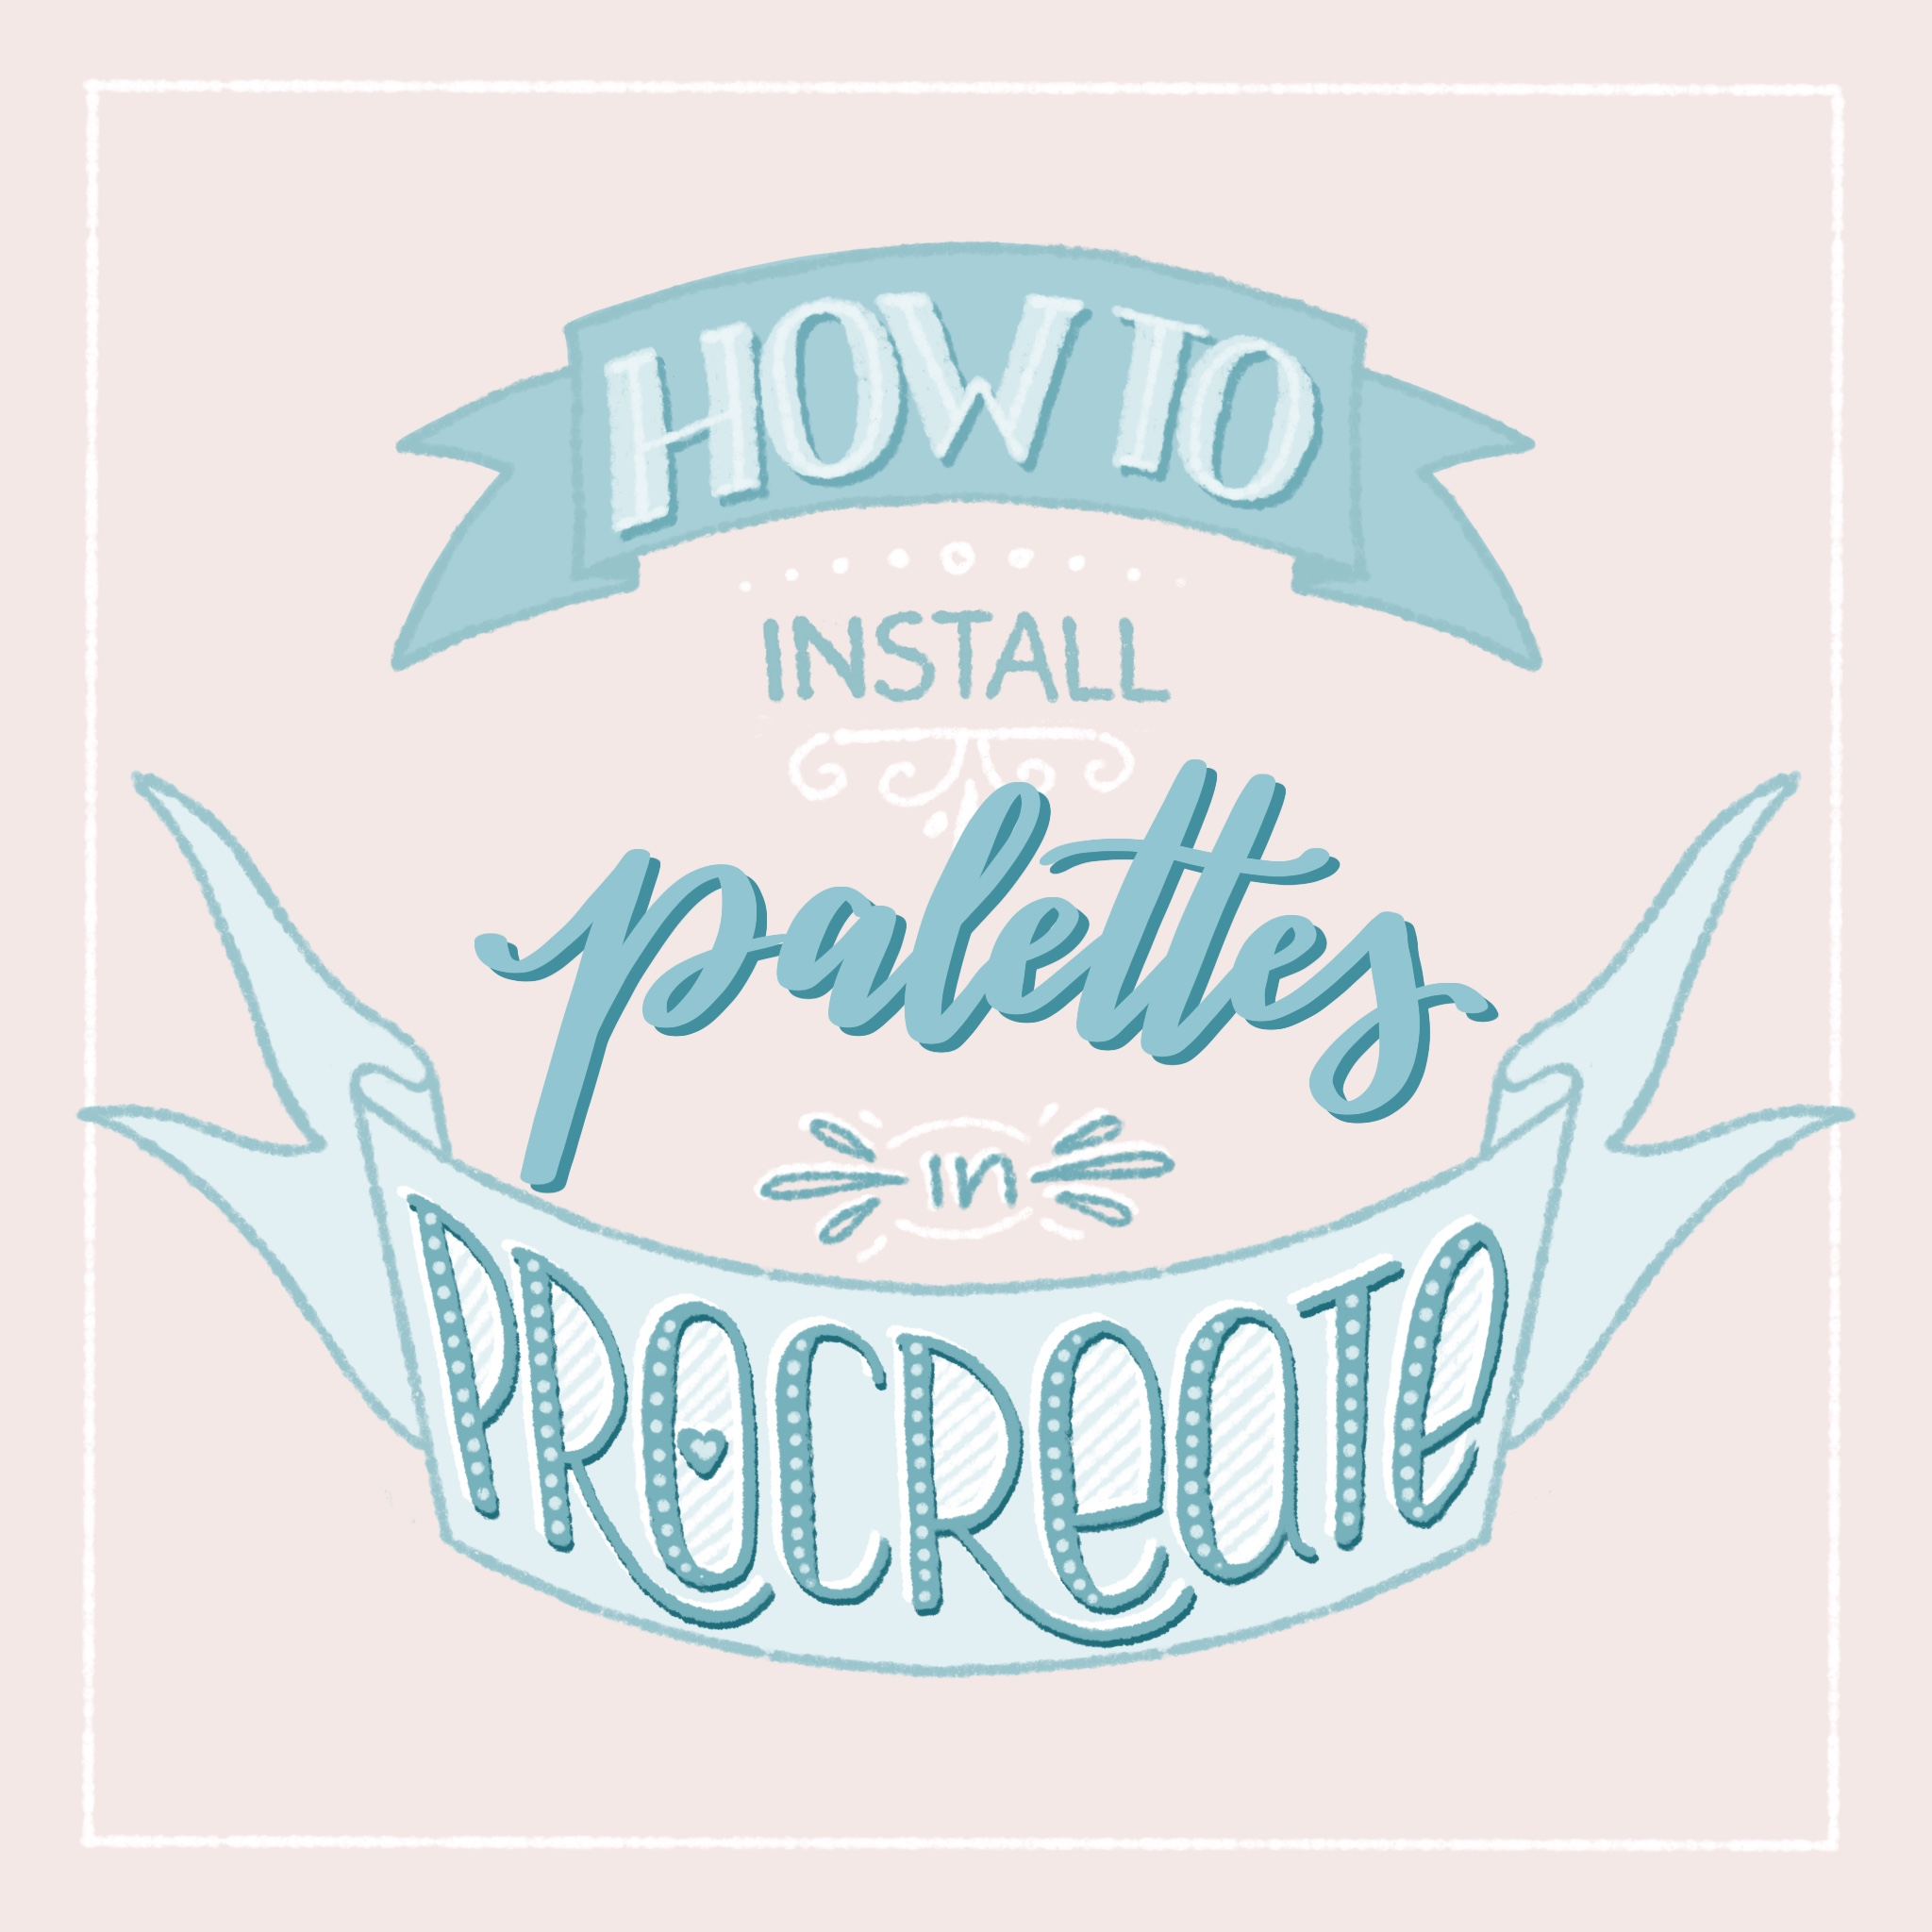 How to install custom palettes in Procreate app - Wonderbox